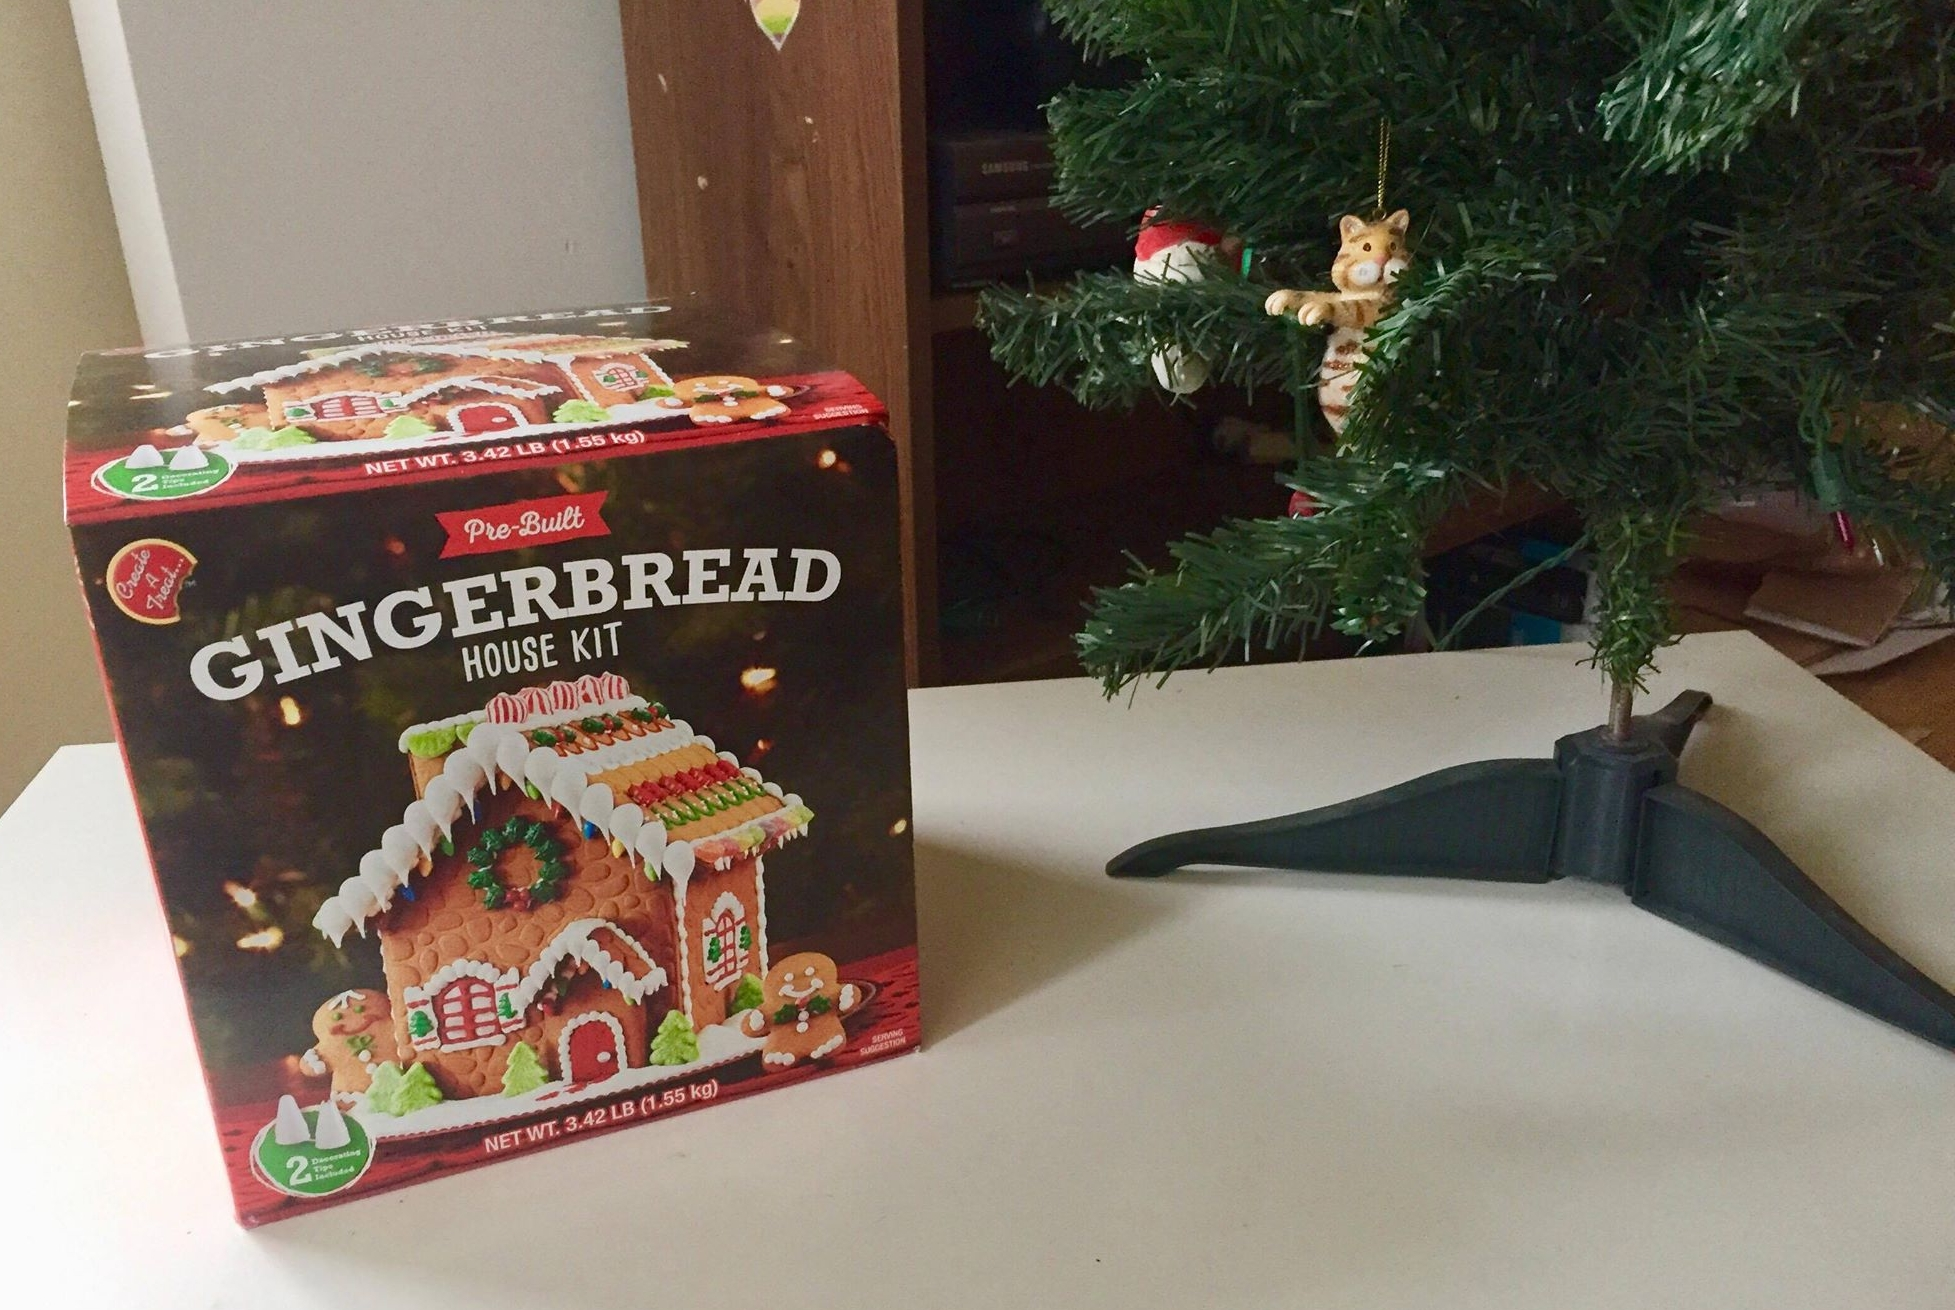 You could win this gingerbread house kit by supporting NOMAS' fundraiser for charity.